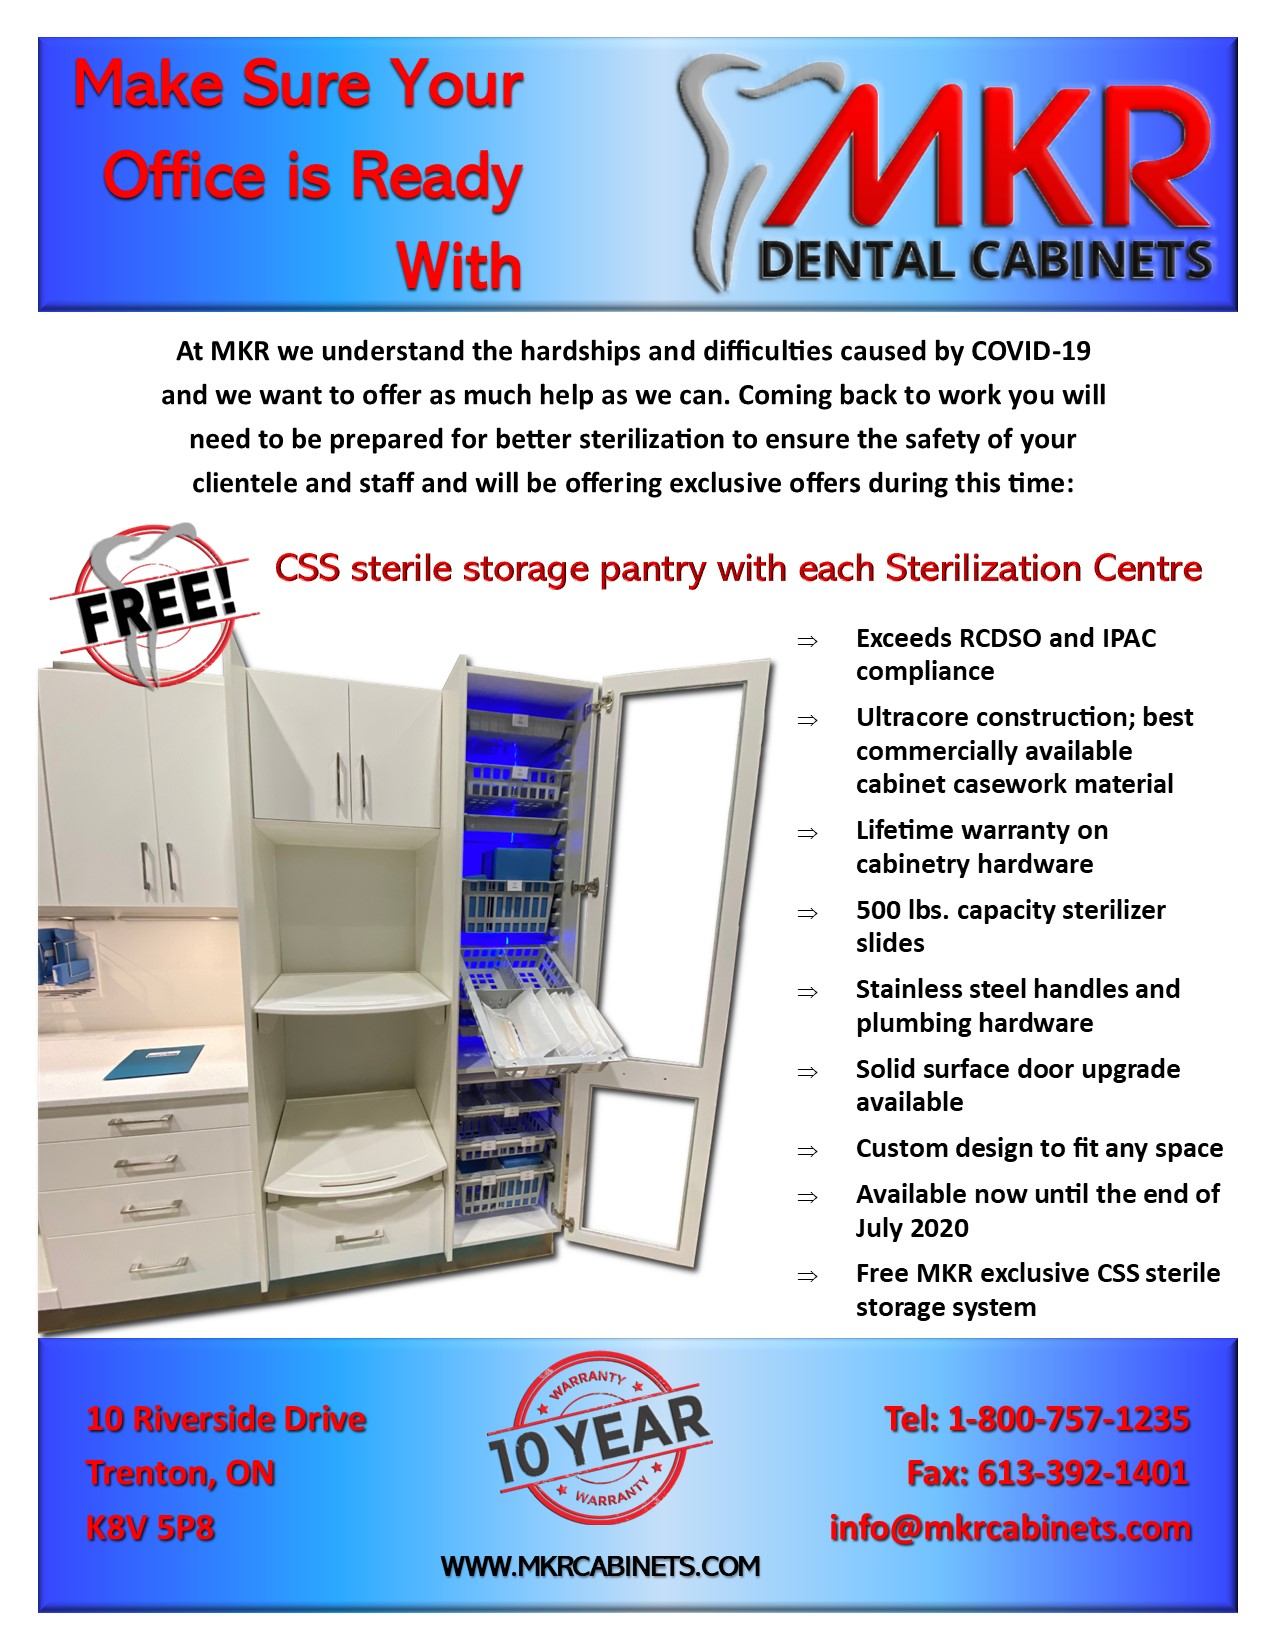 Make Sure Your Office Is Ready With MKR Dental Cabinets